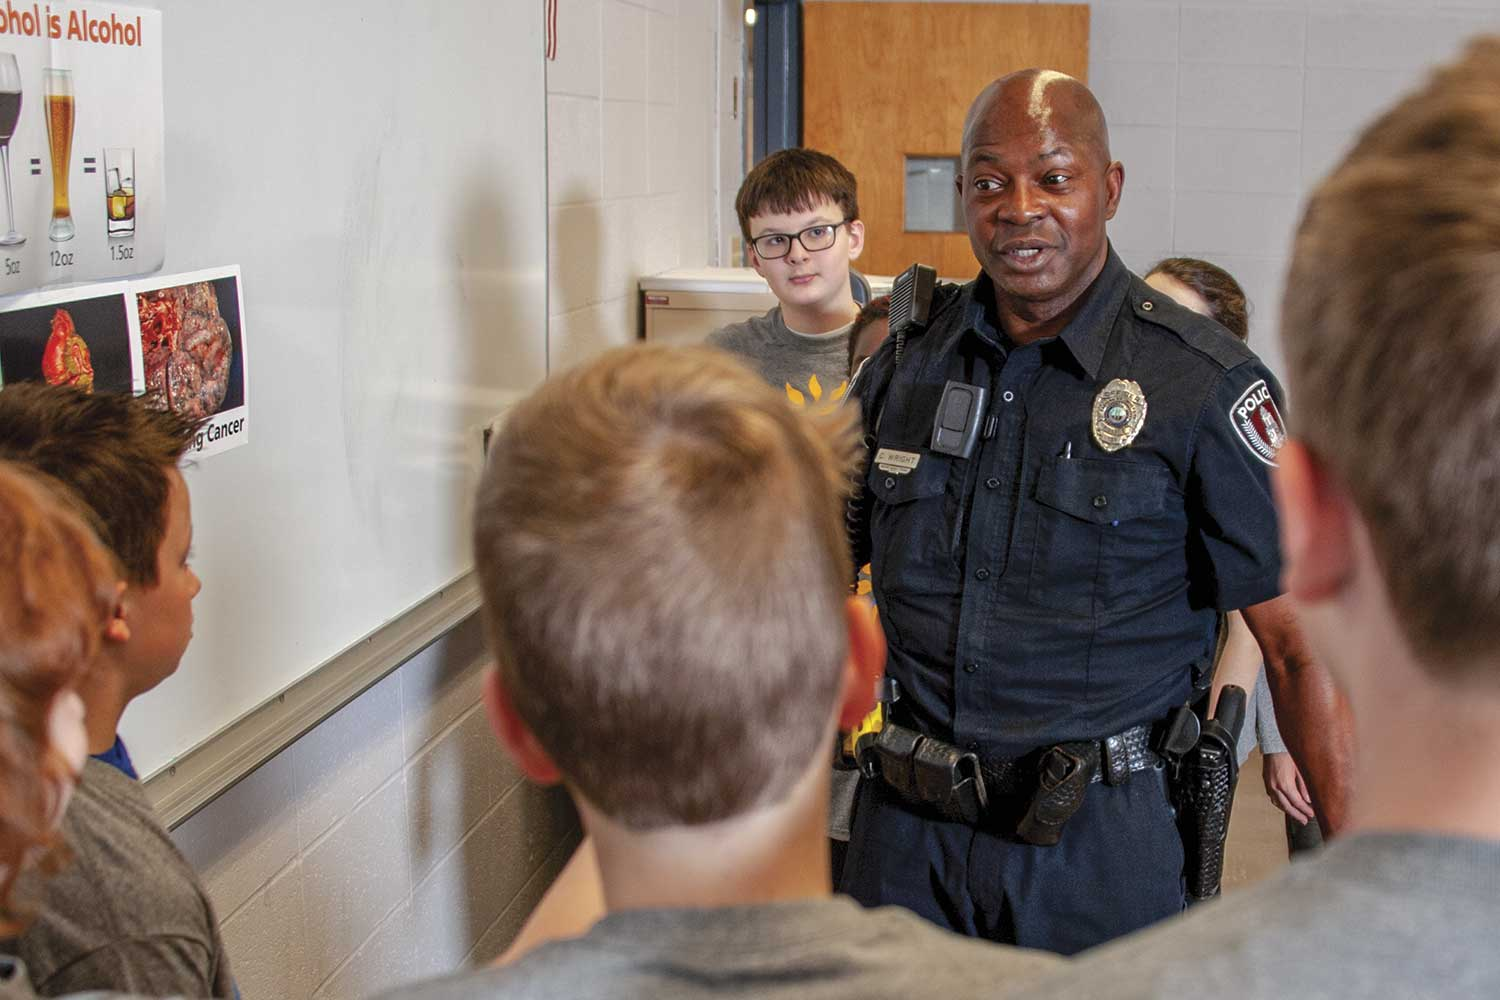 EKUPD Officer Chet Wright serves as a school resource officer for EKU's Model Laboratory School. Wright was recently honored by the University of Kentucky College of Education's Teachers Who Made a Difference program. (Photo by Jim Robertson)